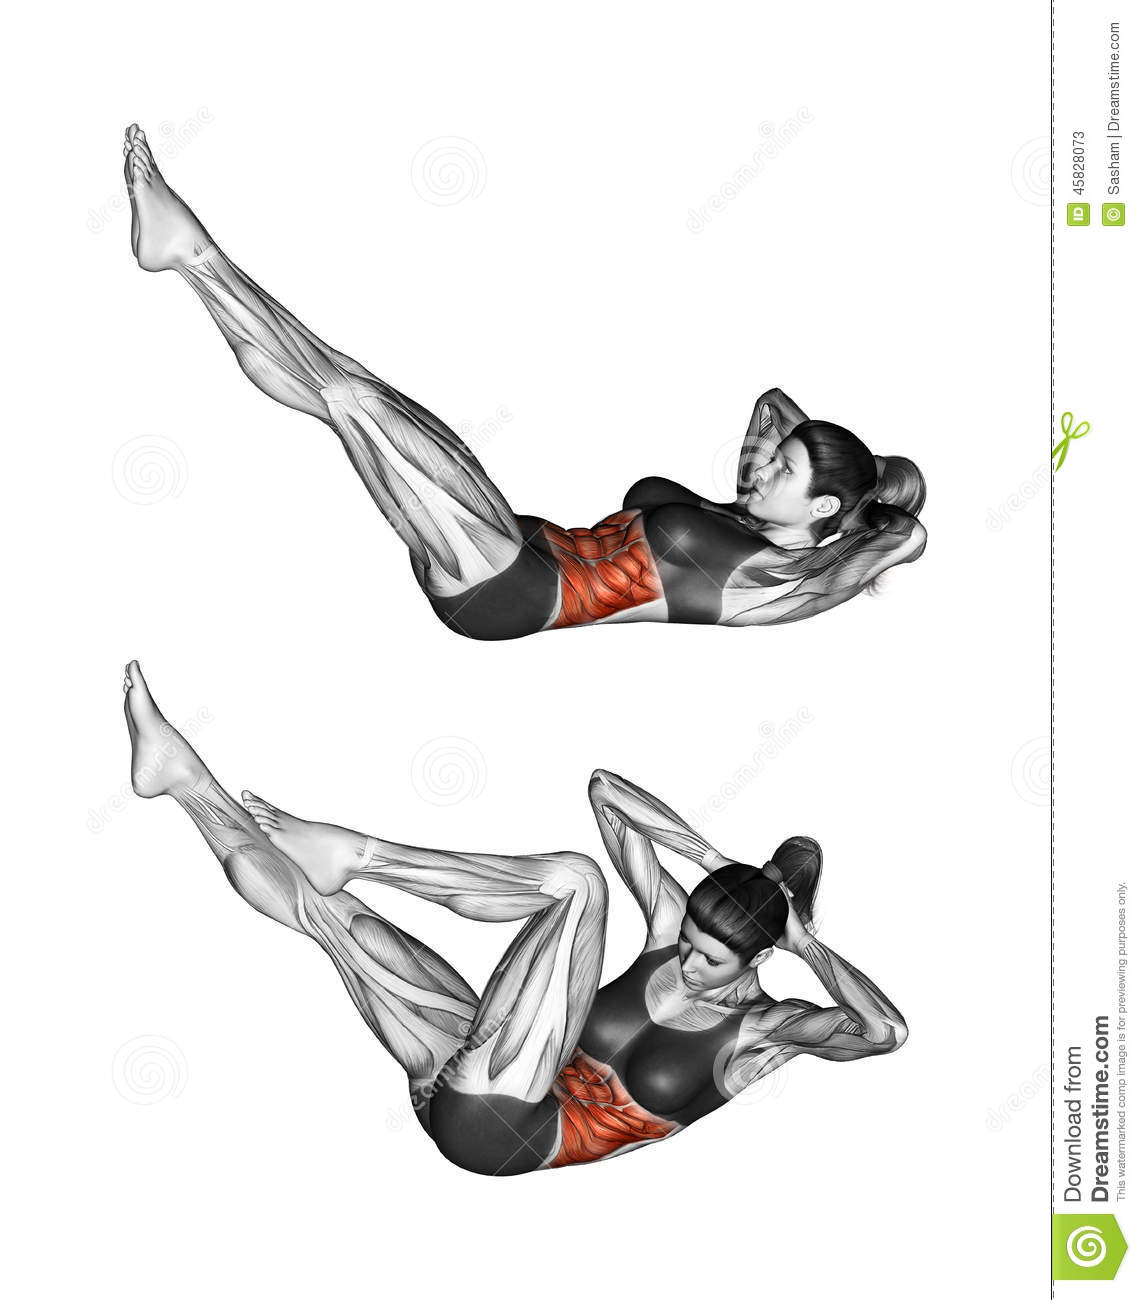 Twisting exercise clipart